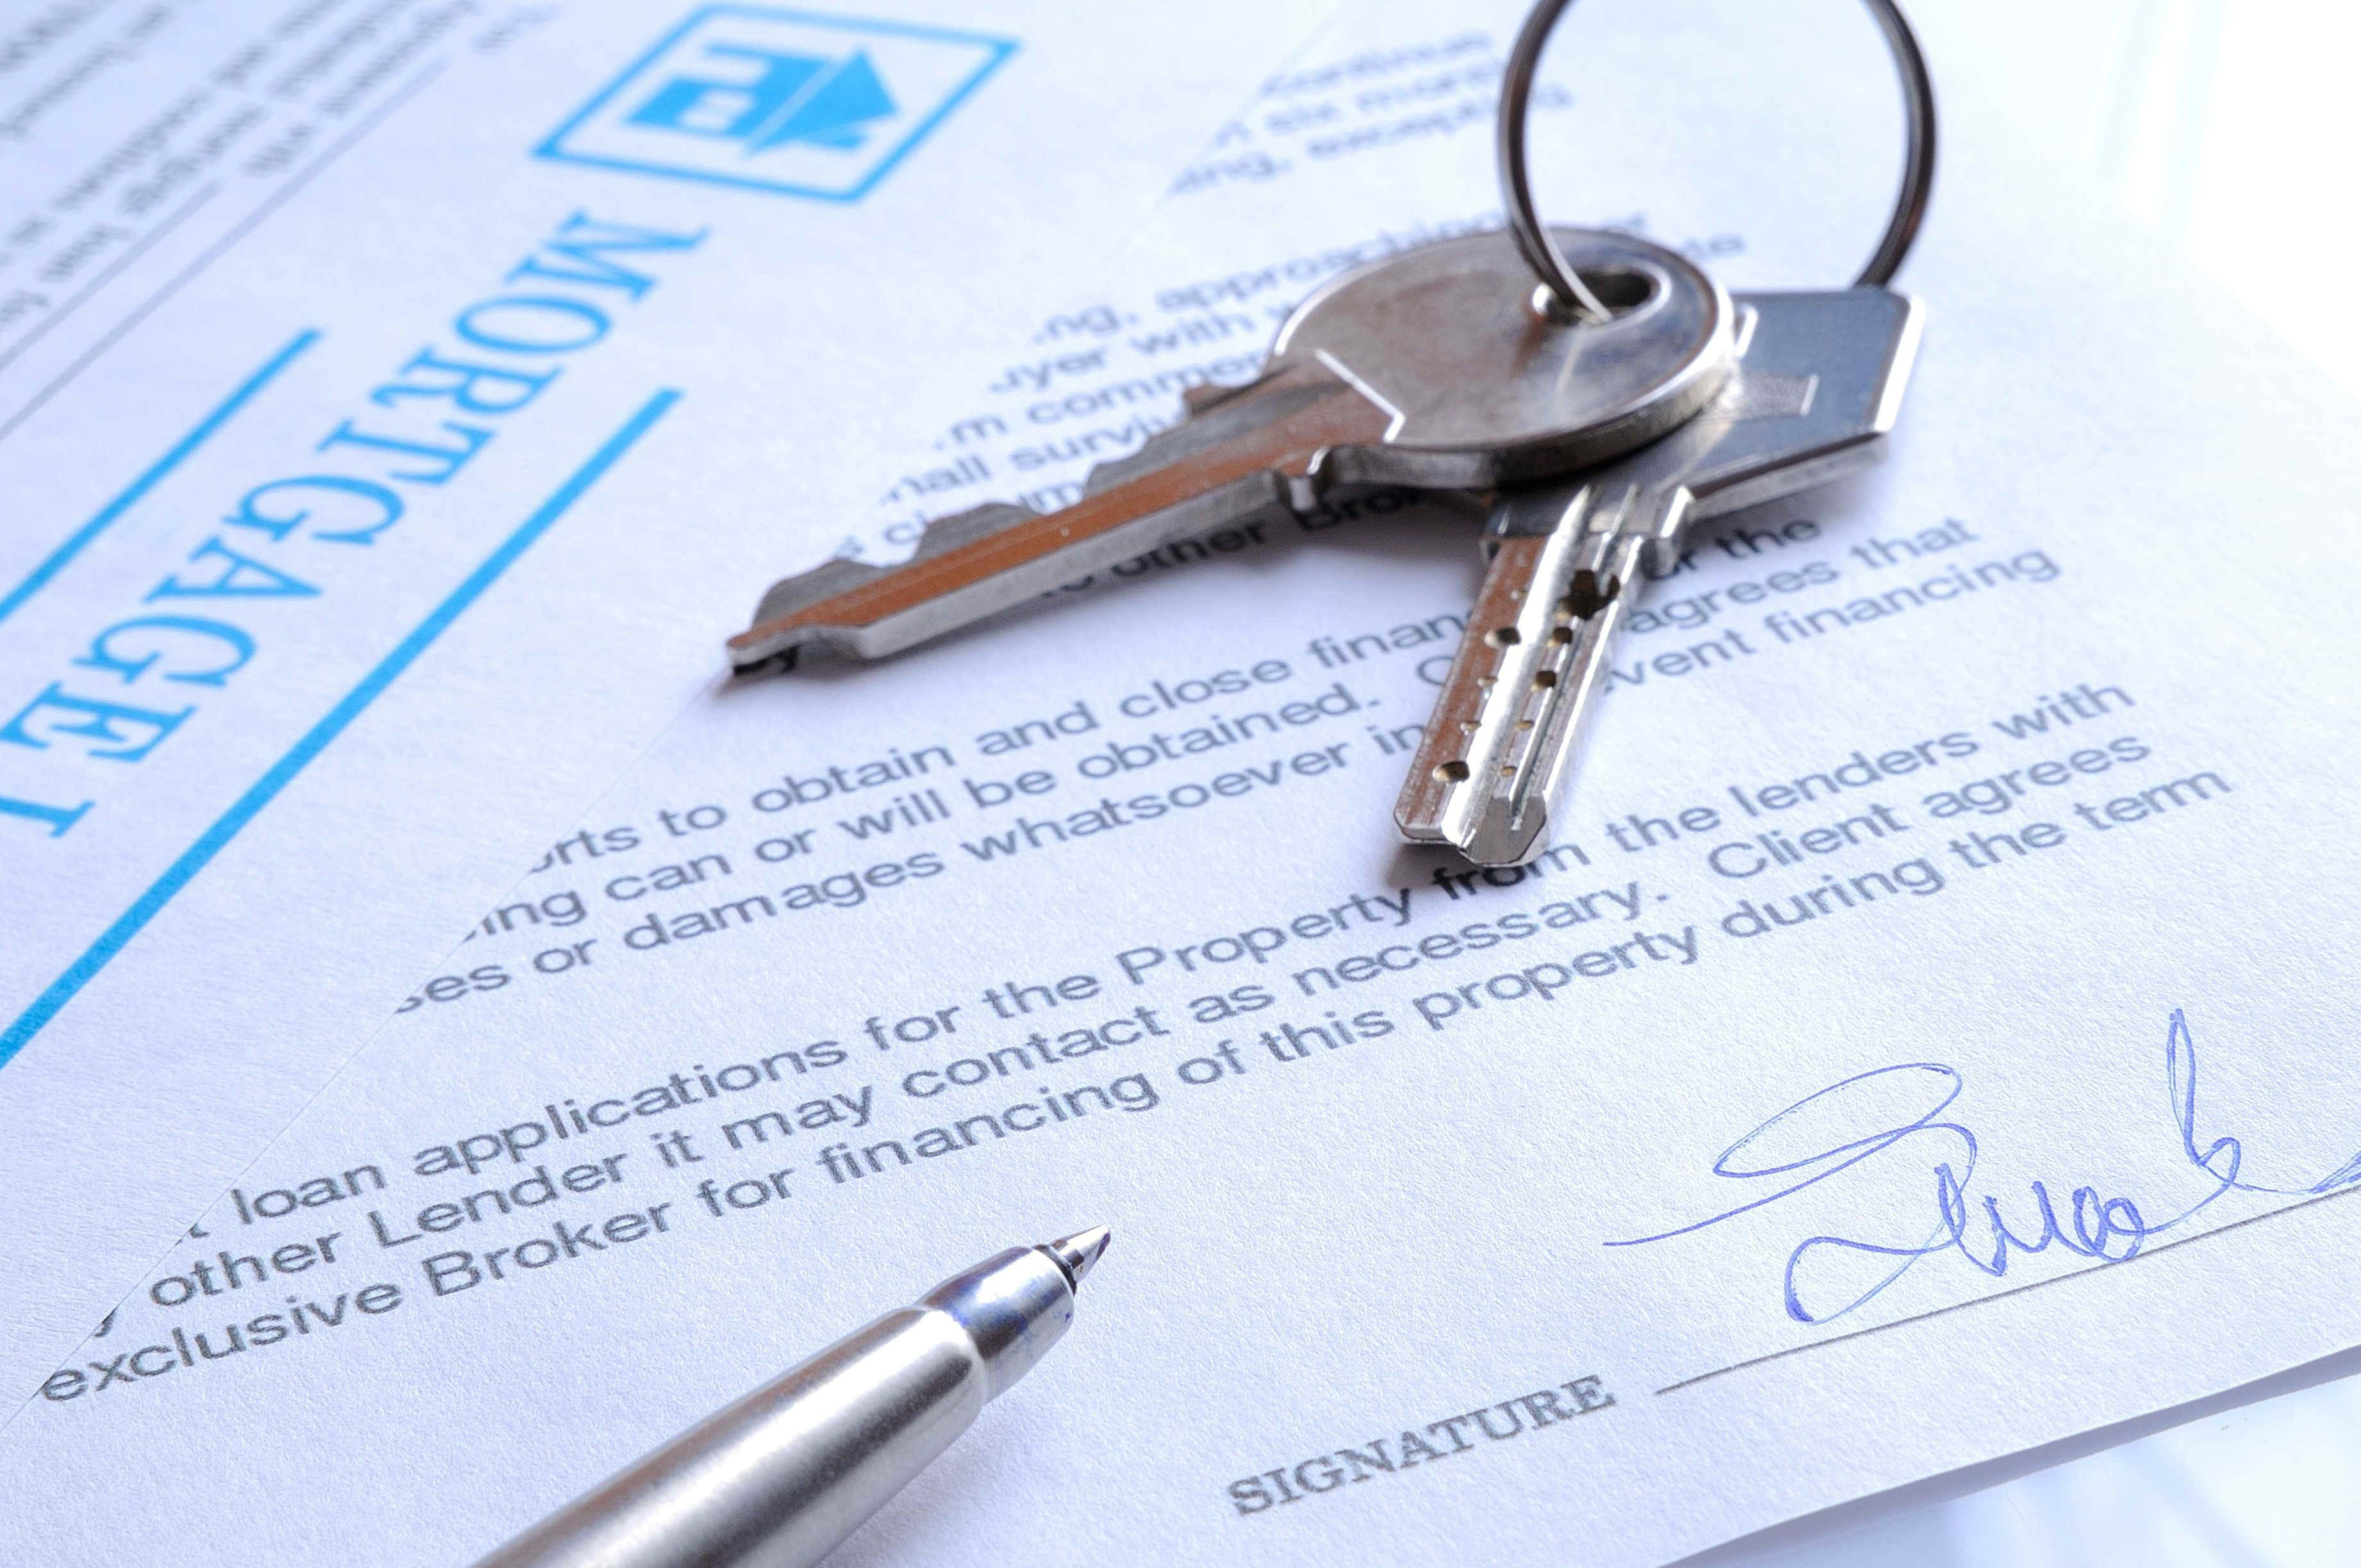 A pen with signed Mortgage papers and keys